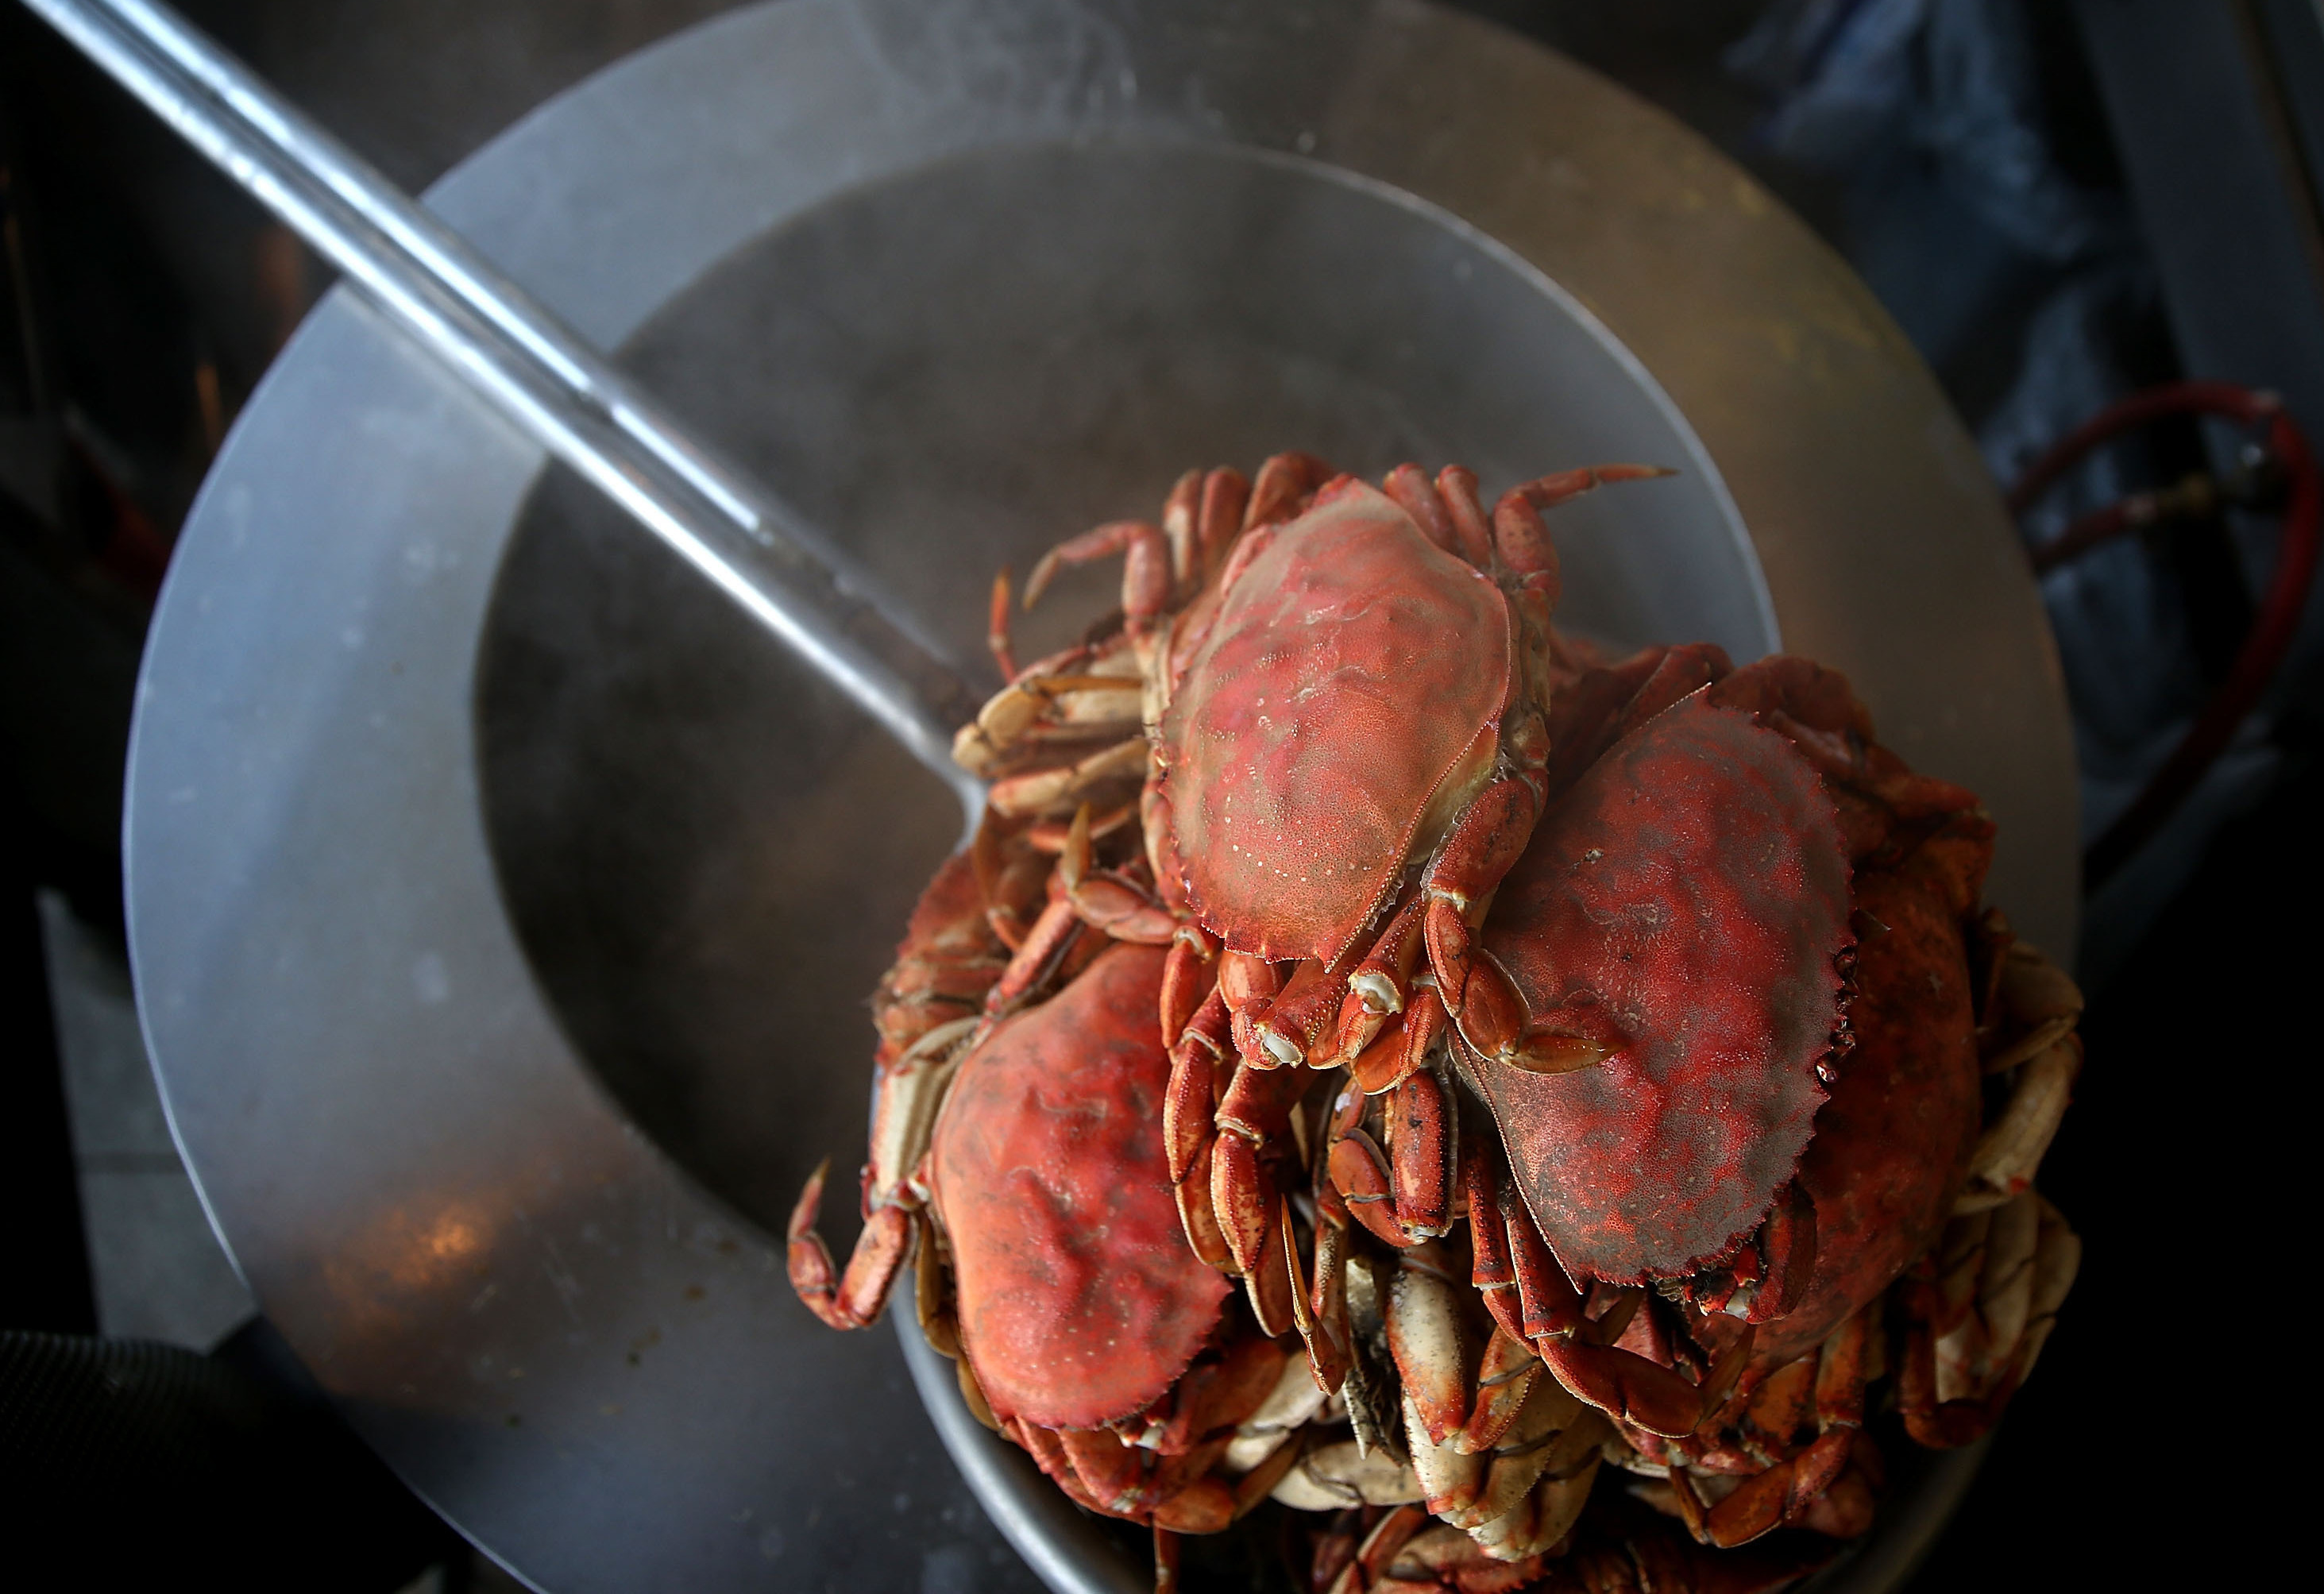 Freshly cooked Dungeness crab sits on a pot of boiling water at Nick's Lighthouse Restaurant in San Francisco, Nov. 5, 2015. Justin Sullivan/Getty Images